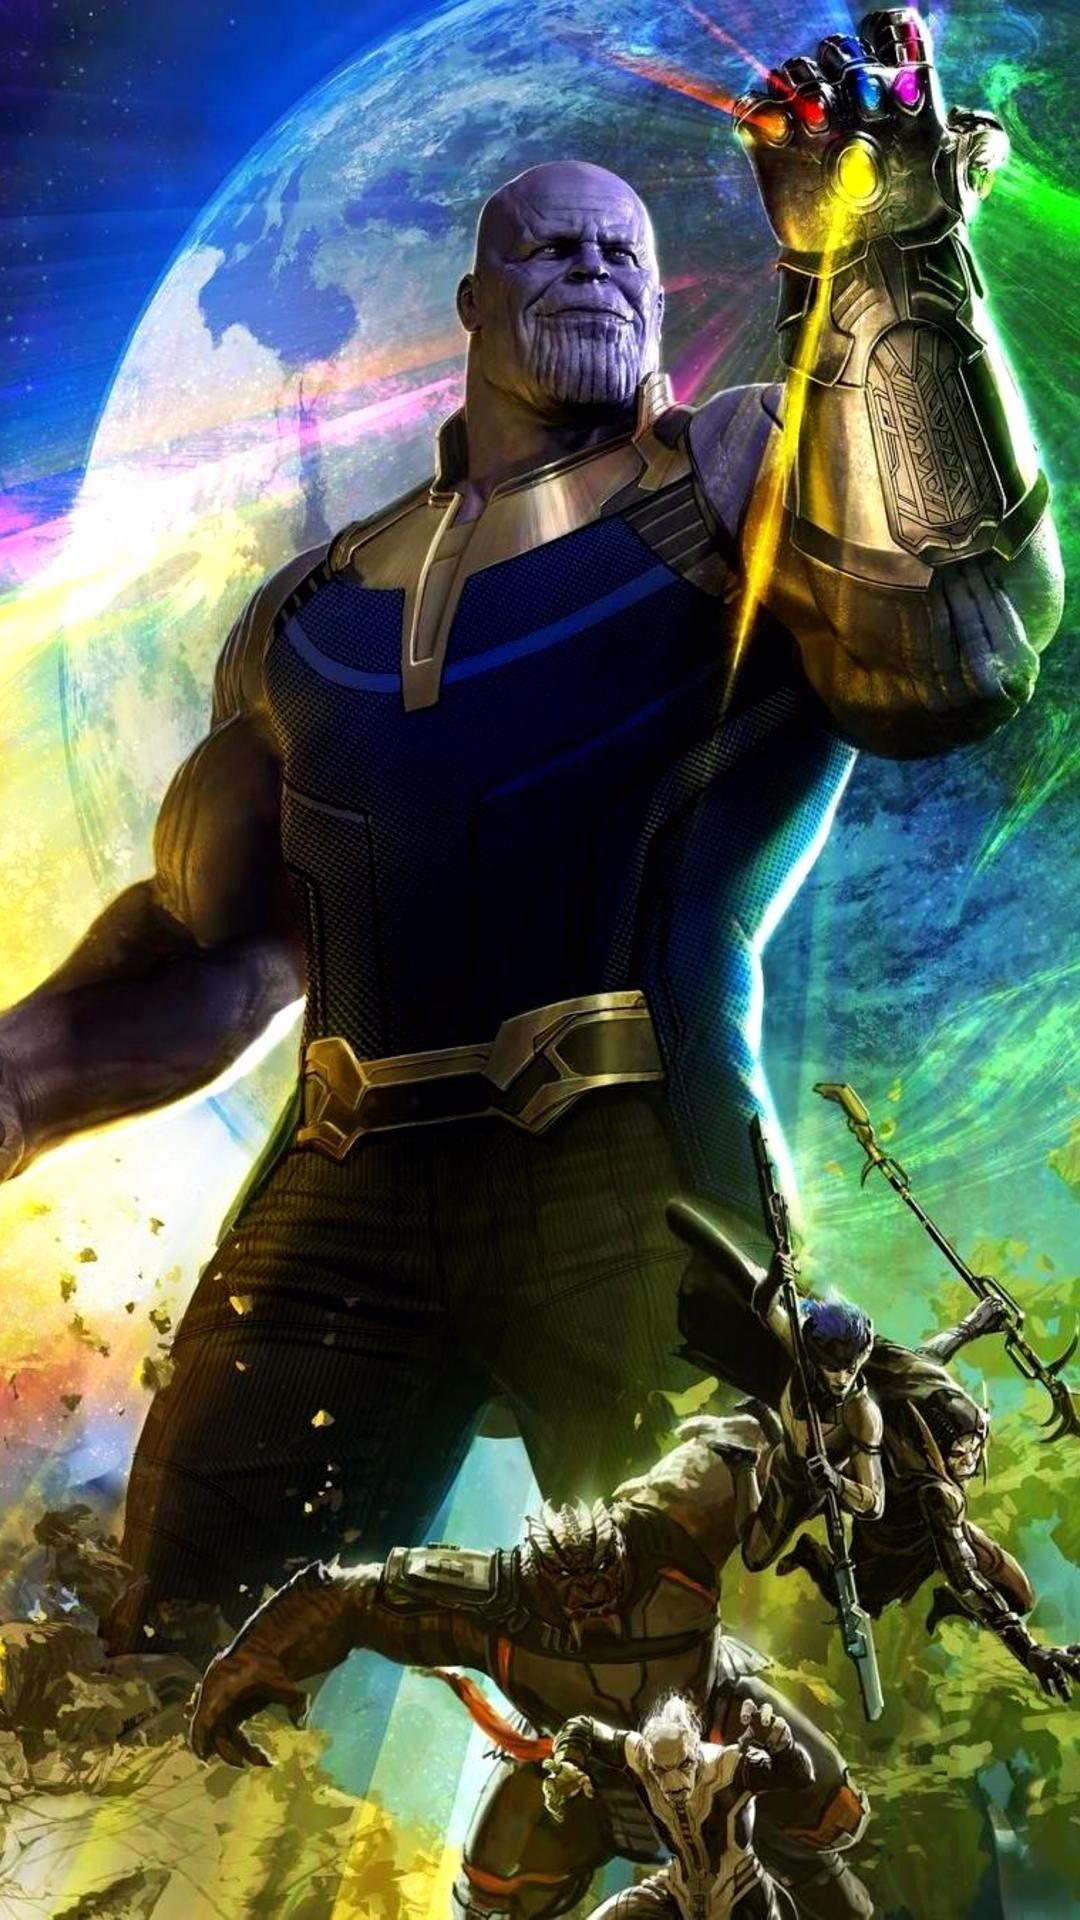 Thanos Wallpaper 4k Mobile Gallery In 2020 Avengers Infinity War Avengers Valkyrie Marvel Comics